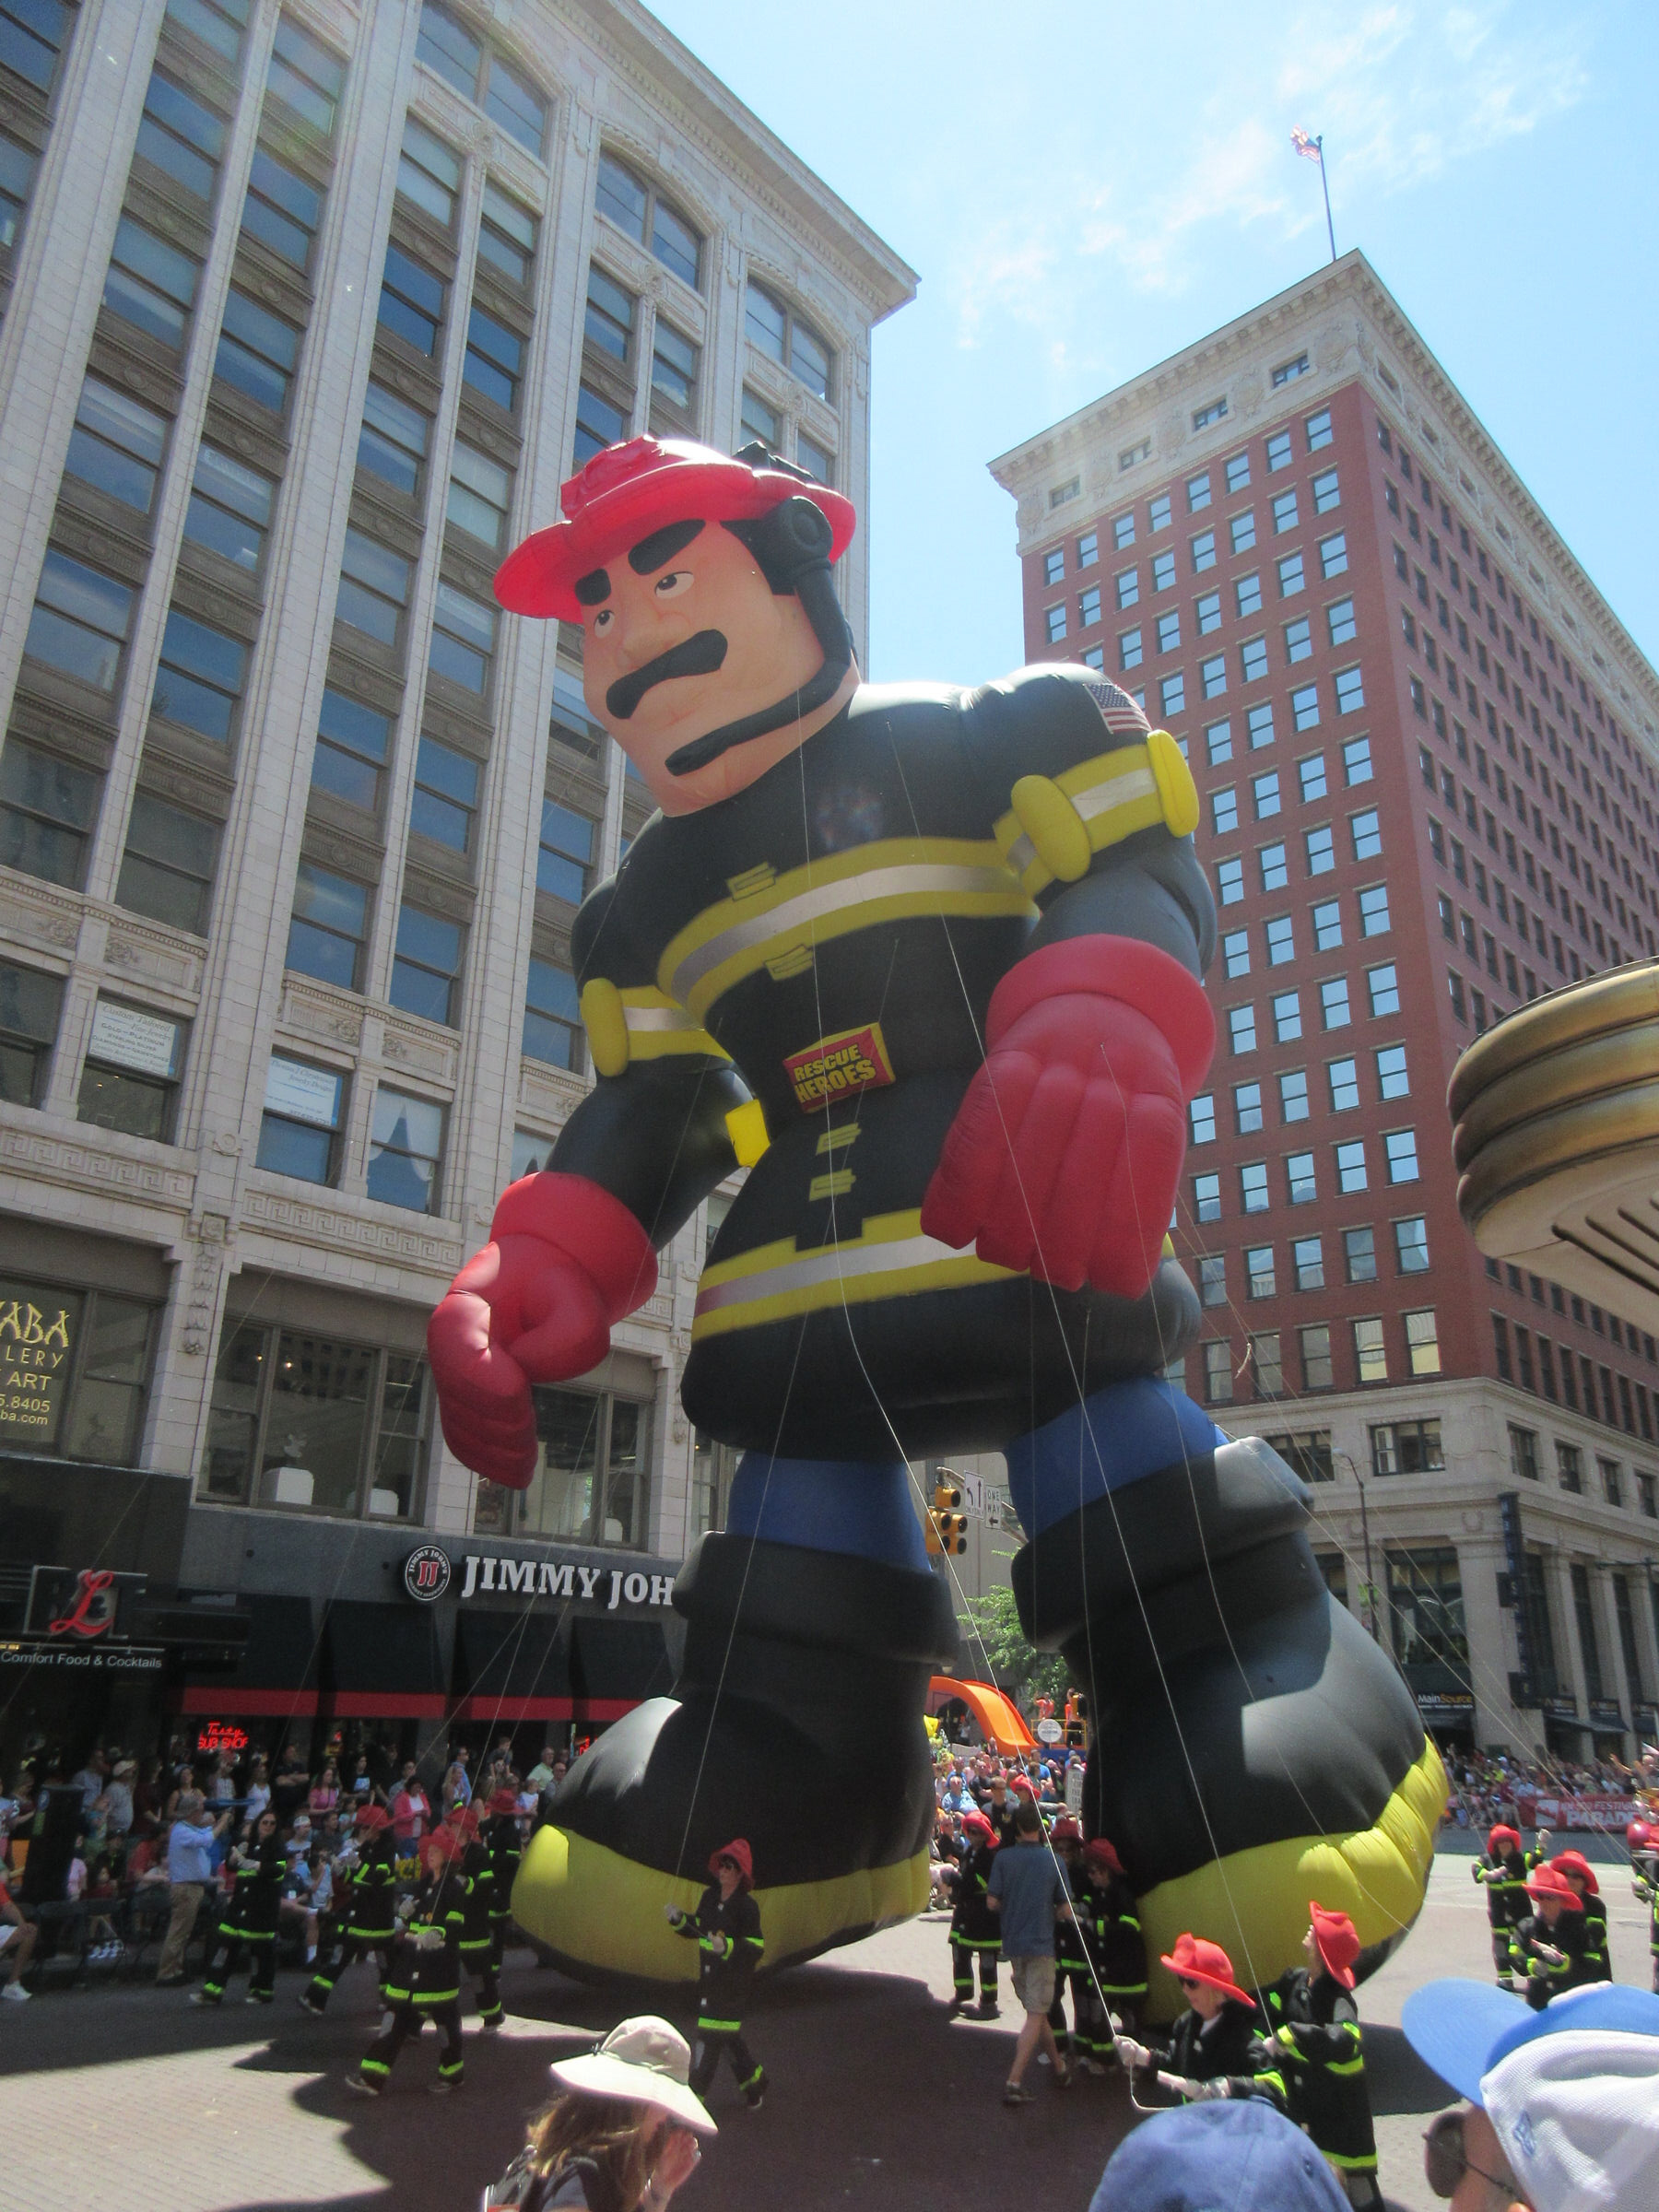 Firestone Indy 500 >> Indy 500 Festival Parade 2015 Photos, Part 4 of 6: Floats and Balloons « Midlife Crisis Crossover!